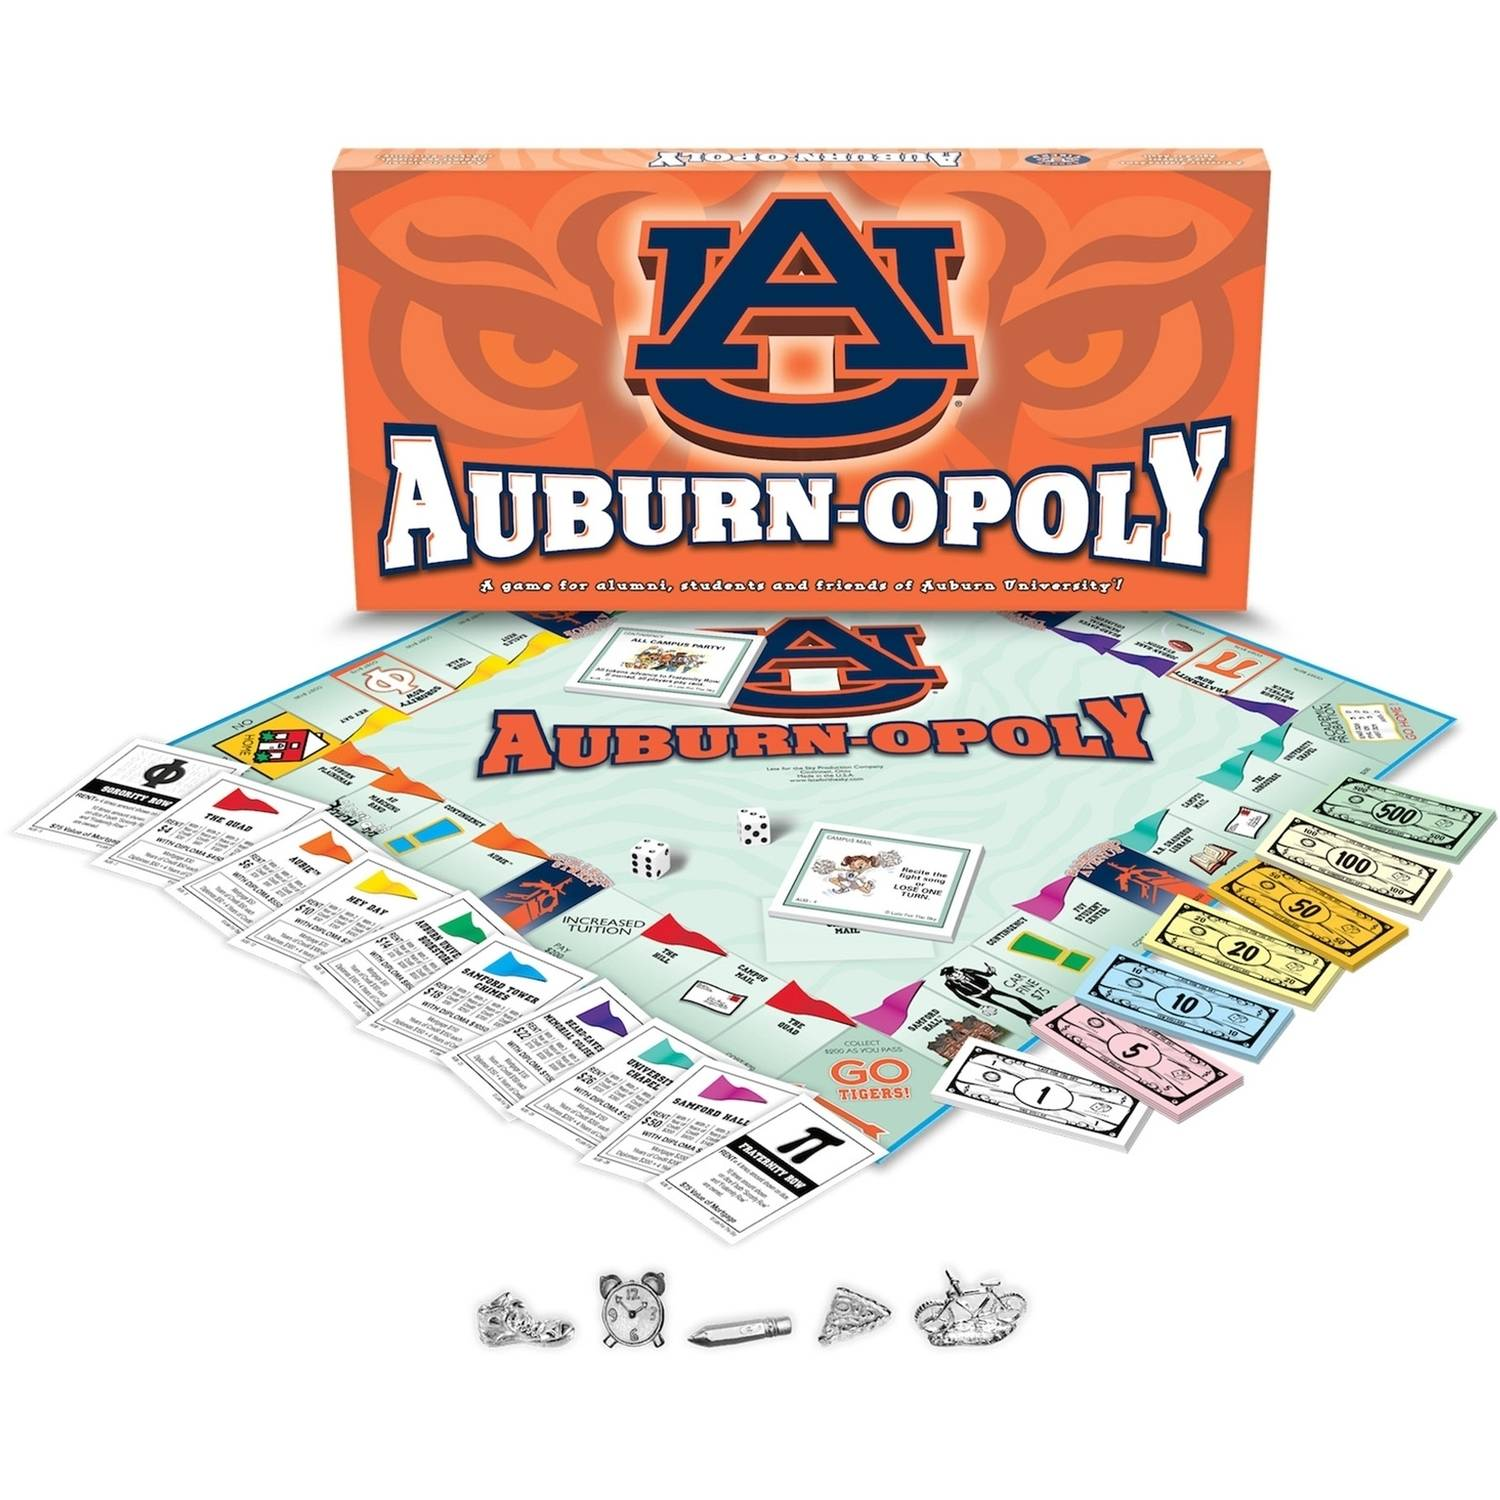 Auburn University - Auburnopoly Board Game